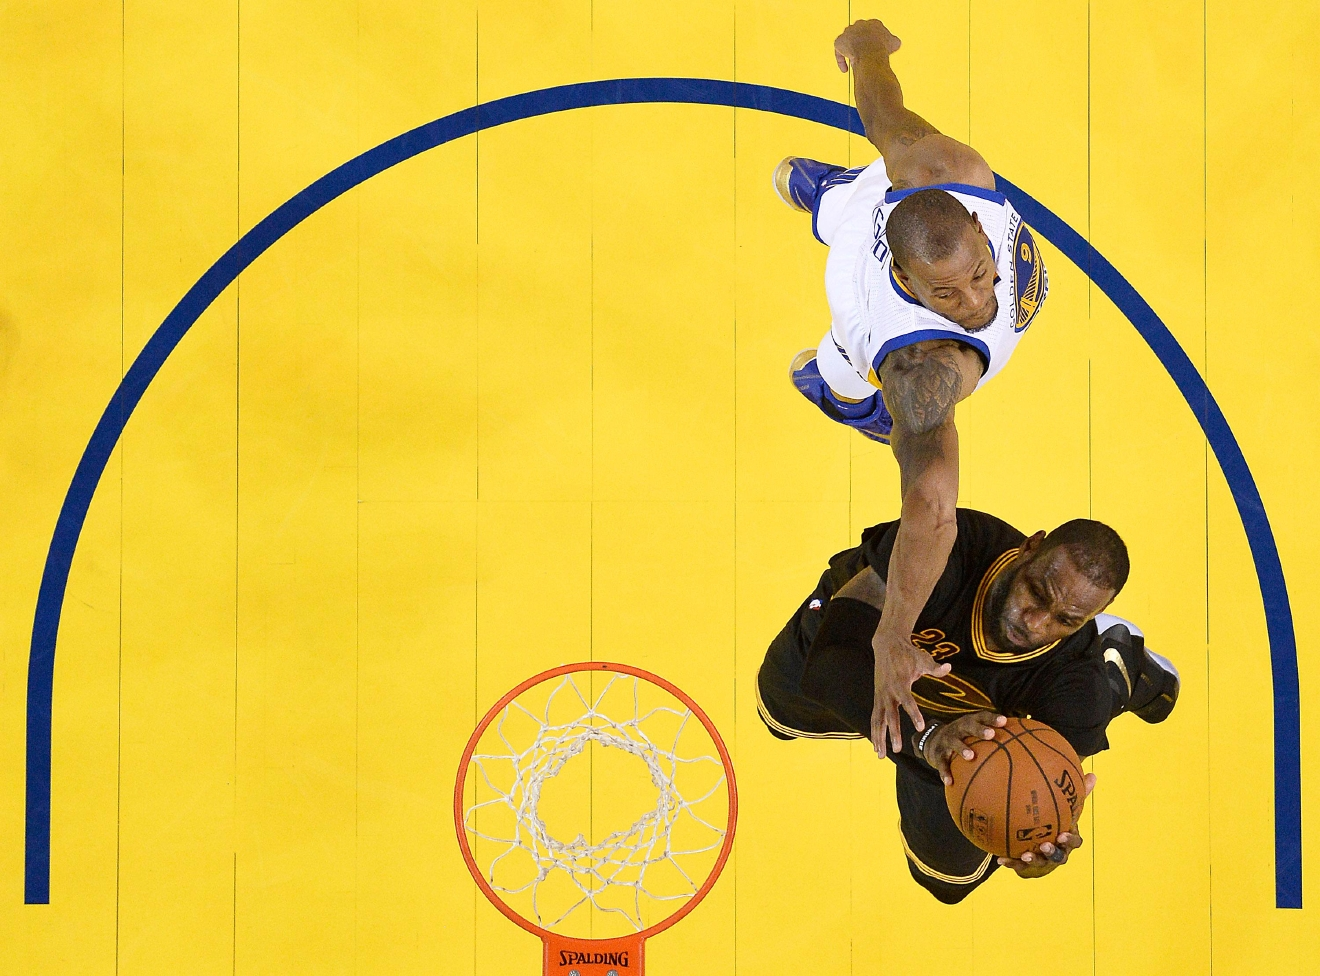 Cleveland Cavaliers forward LeBron James, bottom, shoots against Golden State Warriors forward Andre Iguodala during the second half of Game 7 of basketball's NBA Finals in Oakland, Calif., Sunday, June 19, 2016. The Cavaliers won 93-89. (John G. Mabanglo, European Pressphoto Agency via AP, Pool)